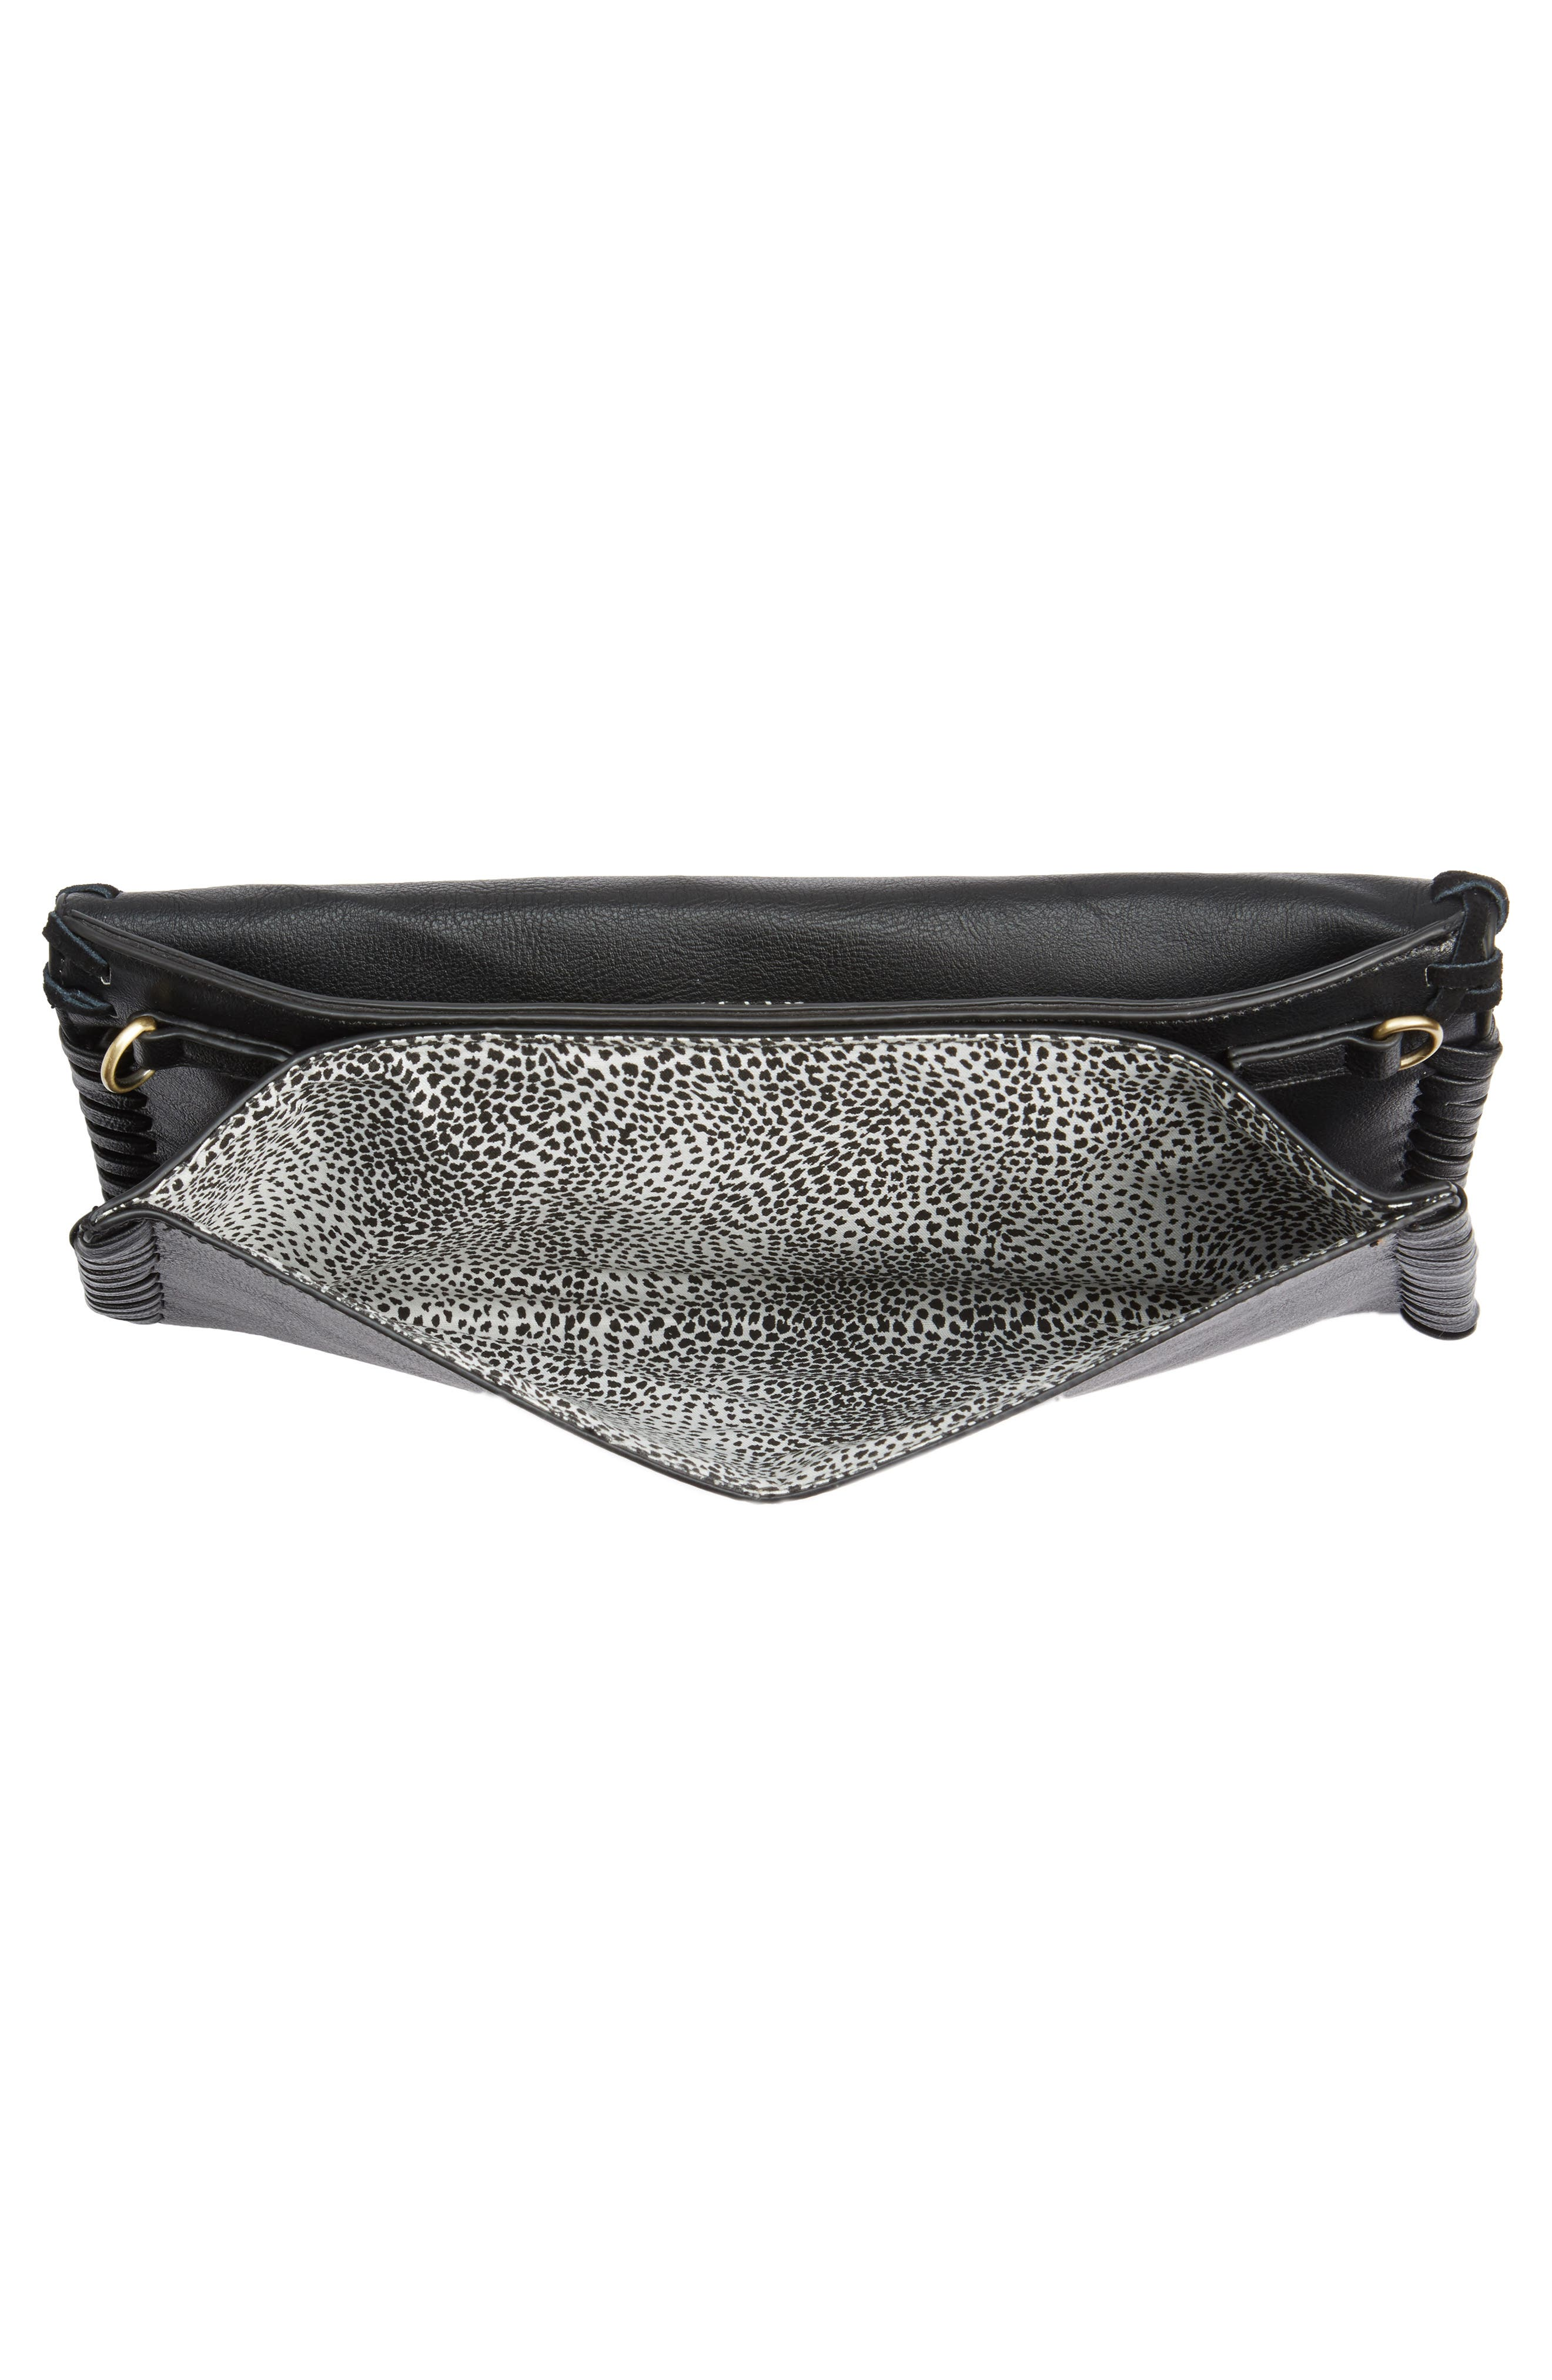 SOLE SOCIETY,                             Waverly Whipstitch Clutch,                             Alternate thumbnail 4, color,                             001